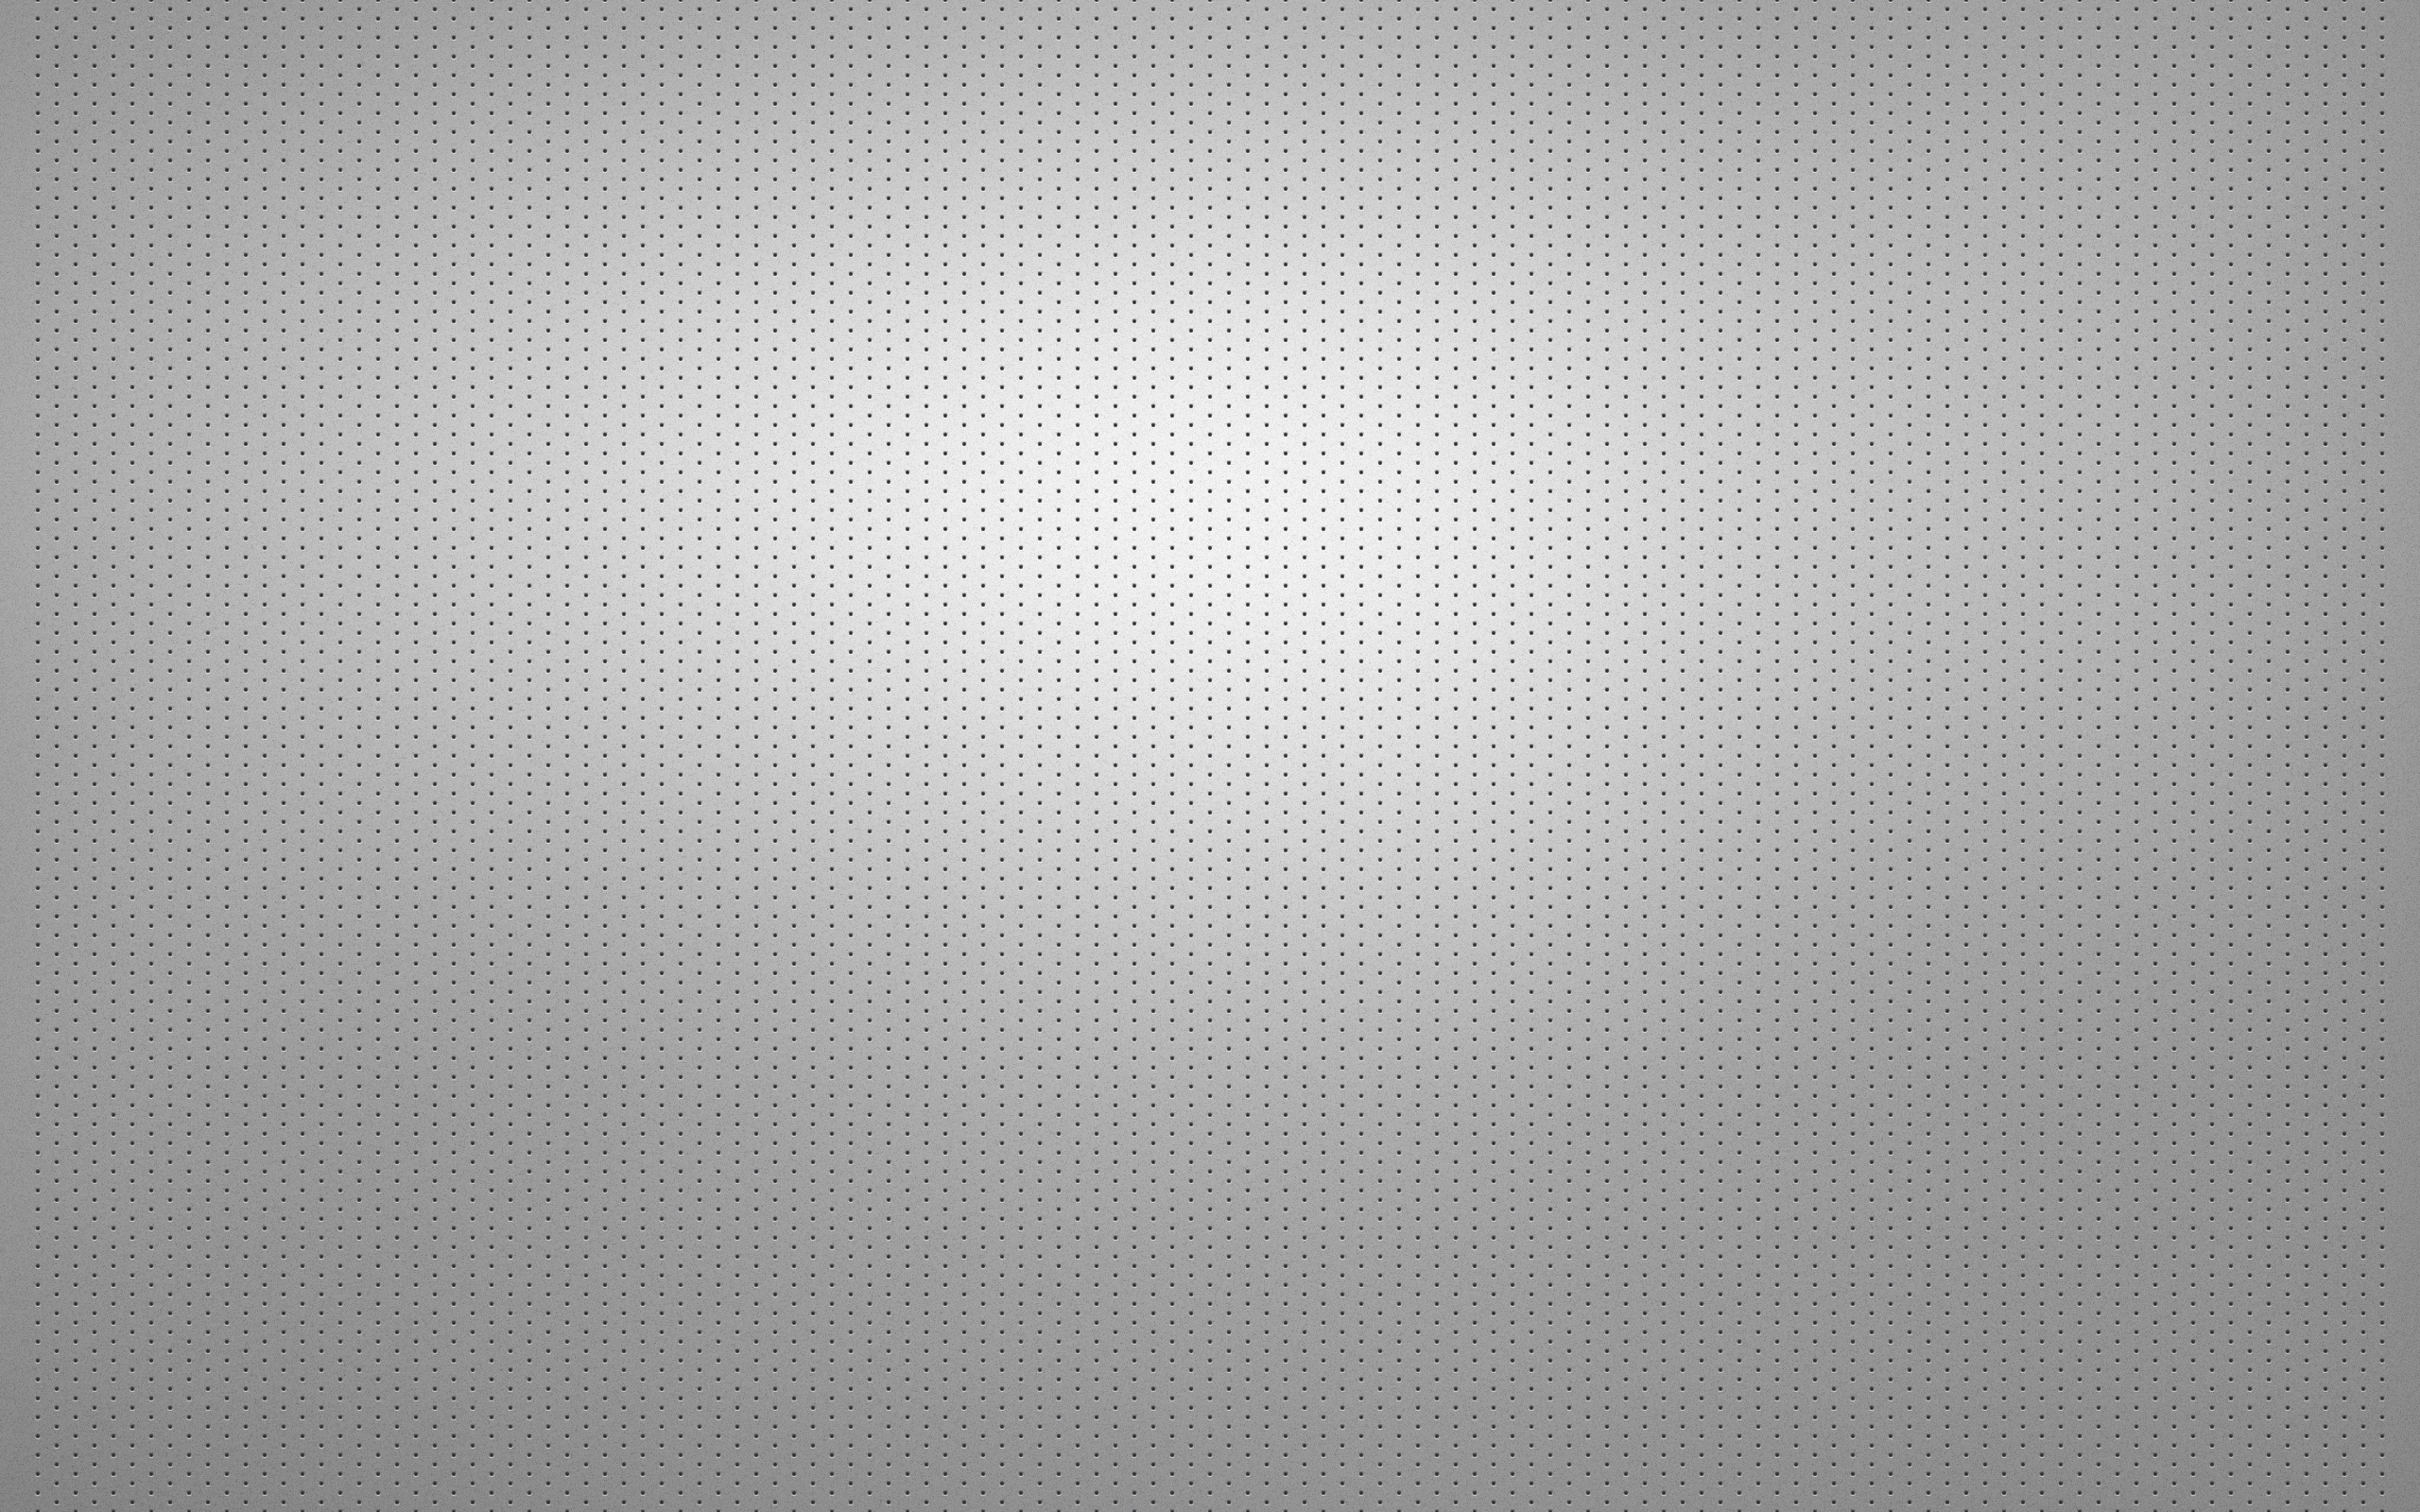 2560x1600 Wallpaper mesh, points, background, silver